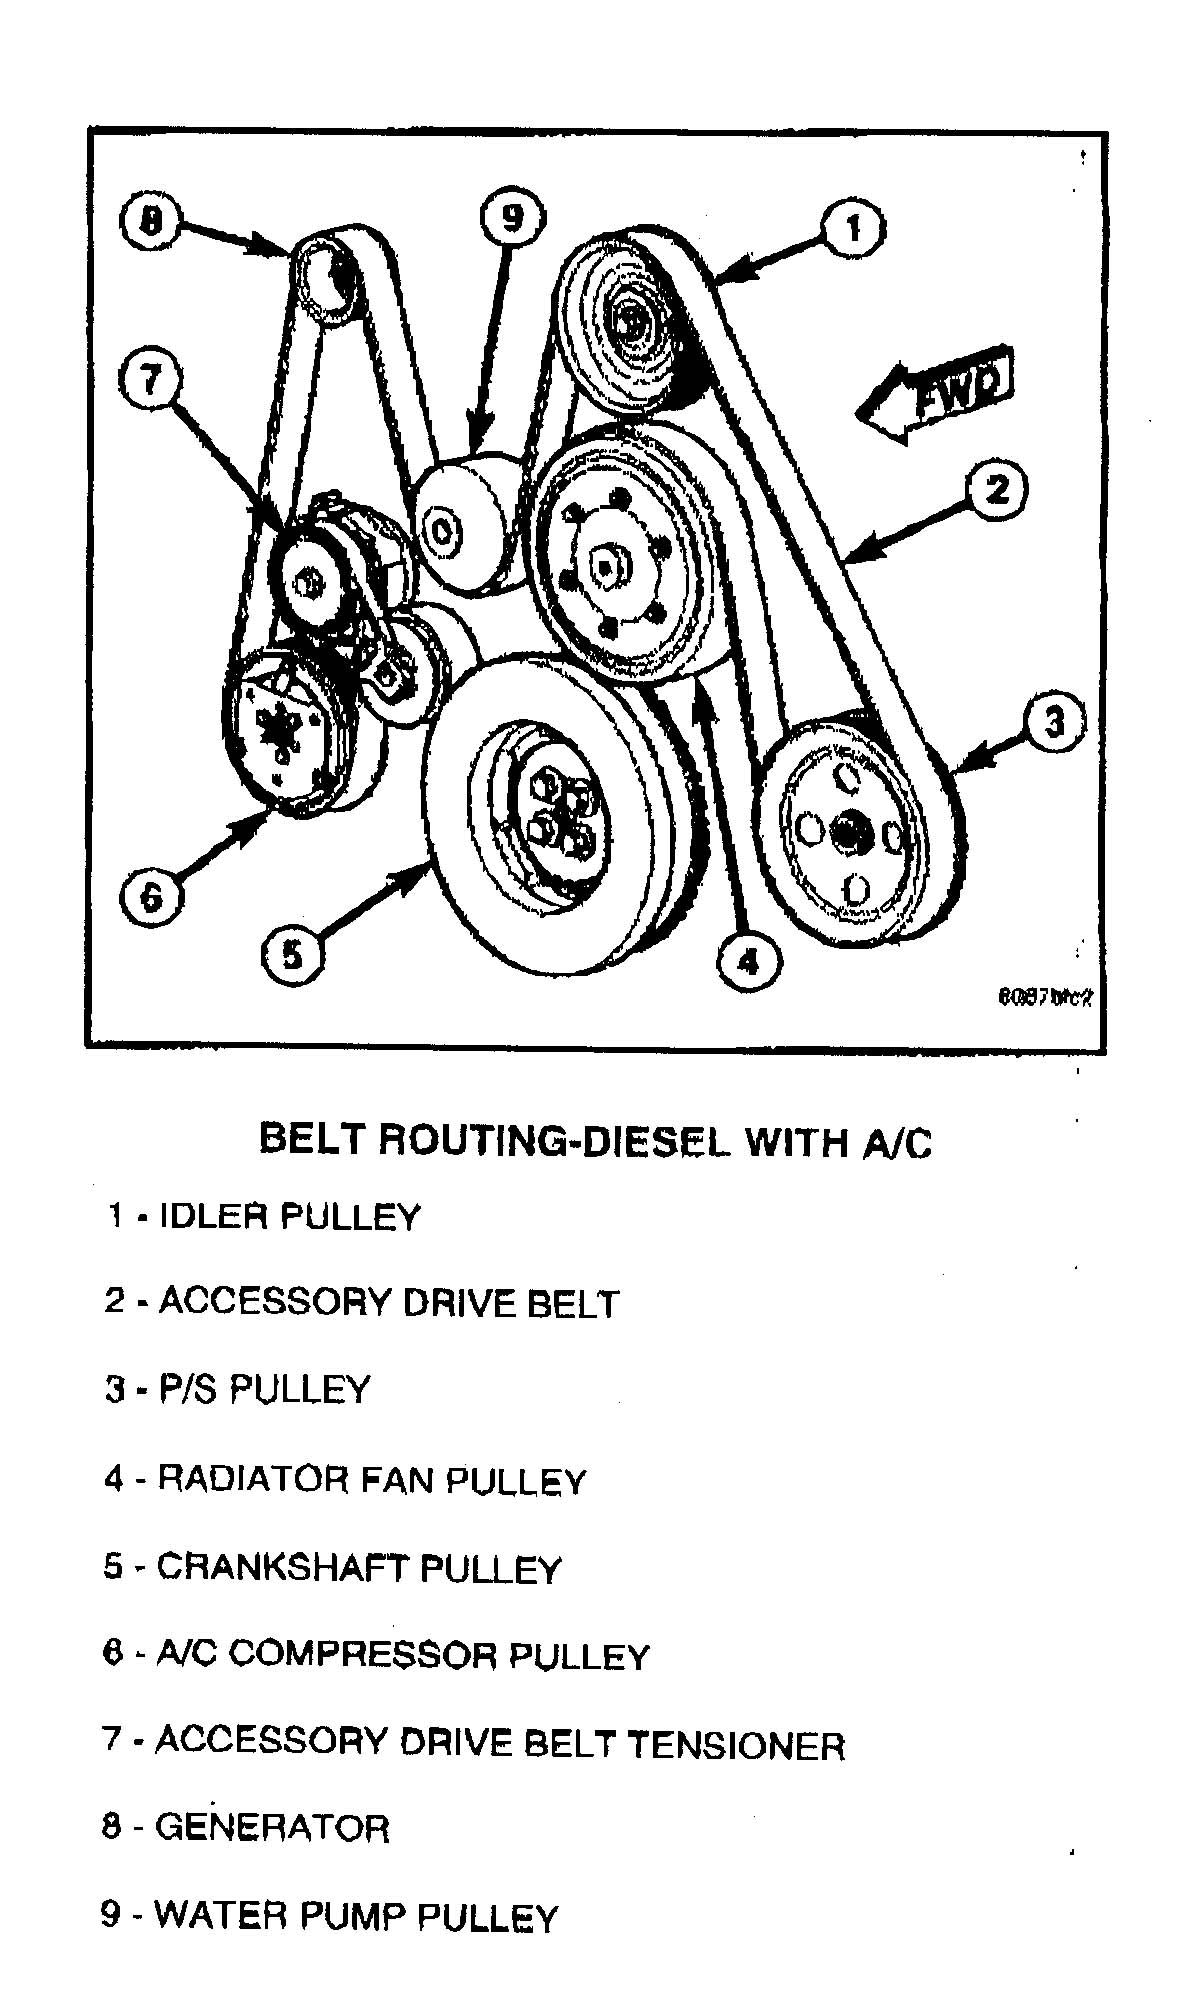 6 7 belt routing diagram dodge diesel diesel truck resource forums dodge diesel diesel [ 1197 x 2013 Pixel ]